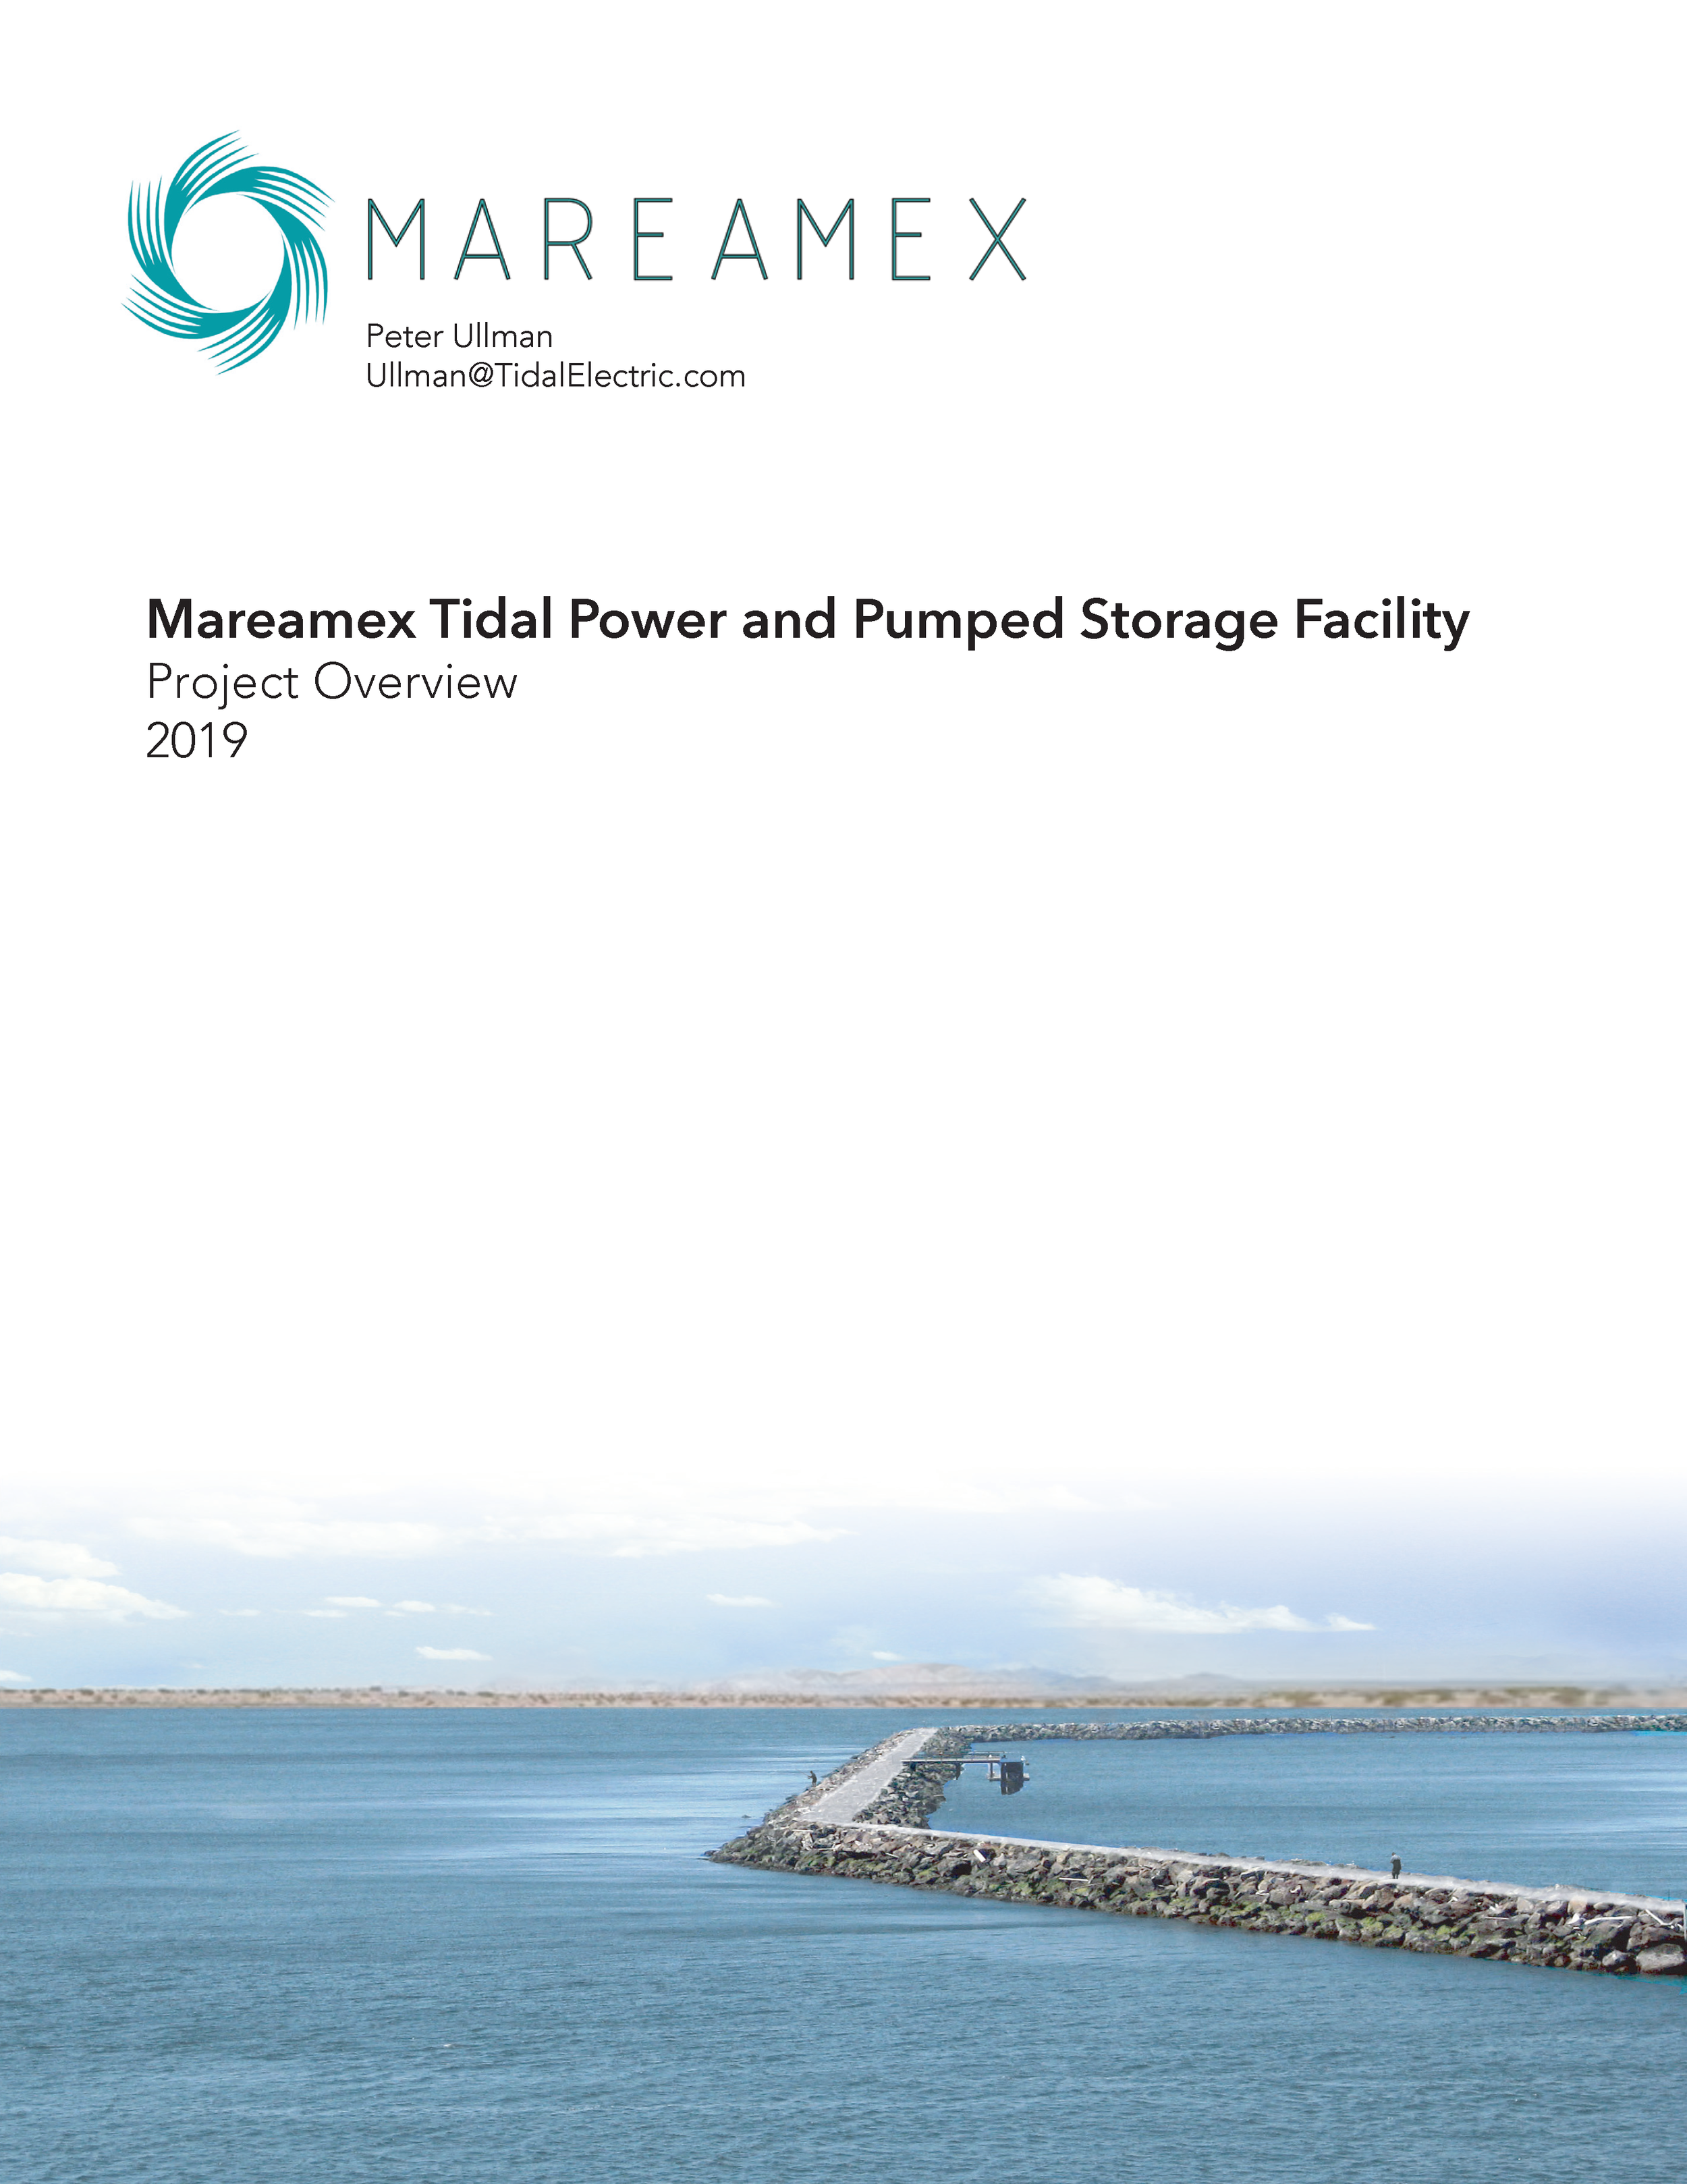 Tidal Electric_Mareamex_Overview_Page_1.png